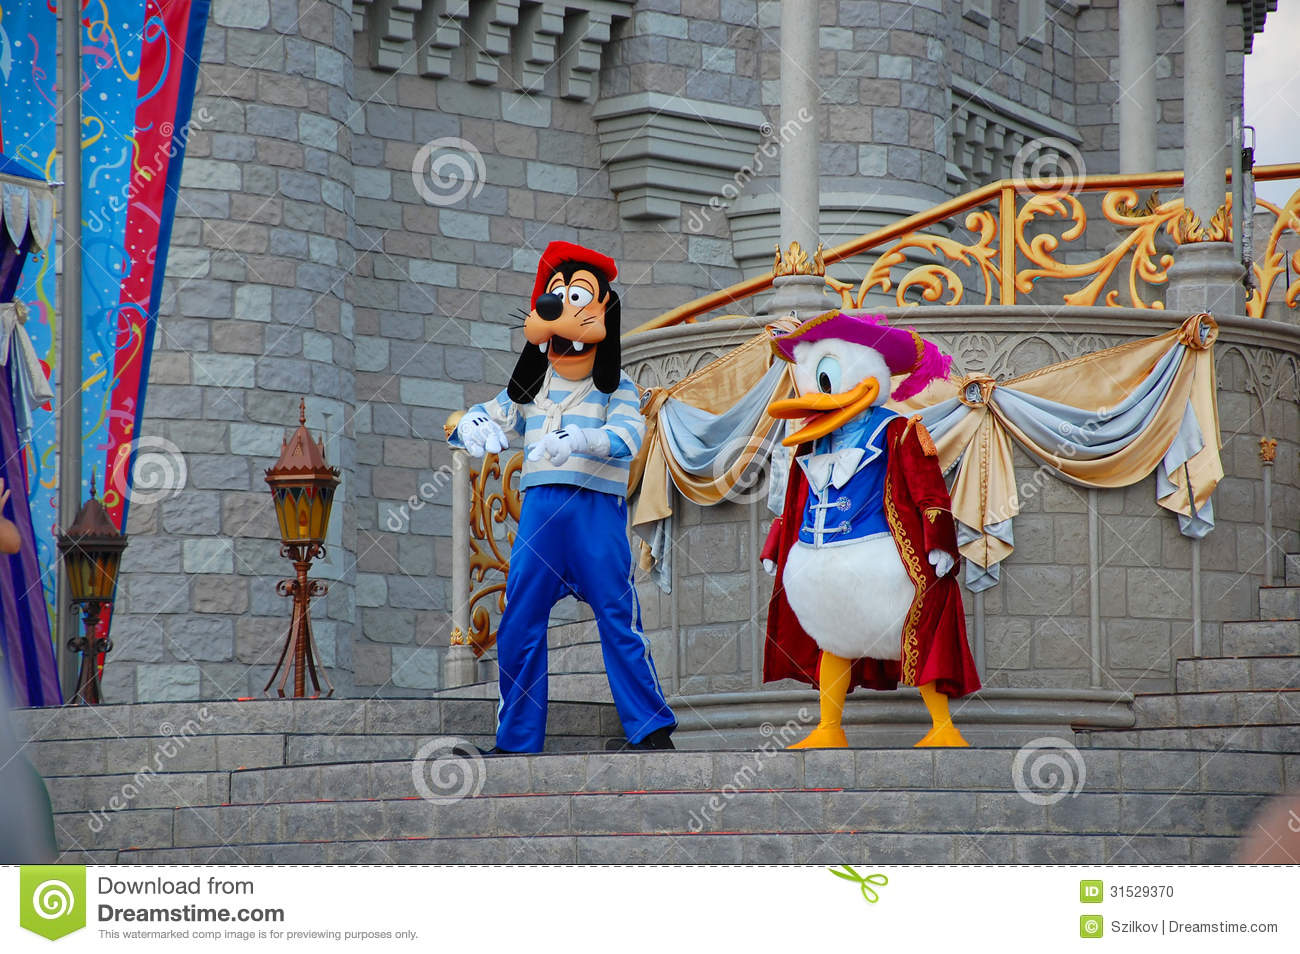 Donald and Goofy